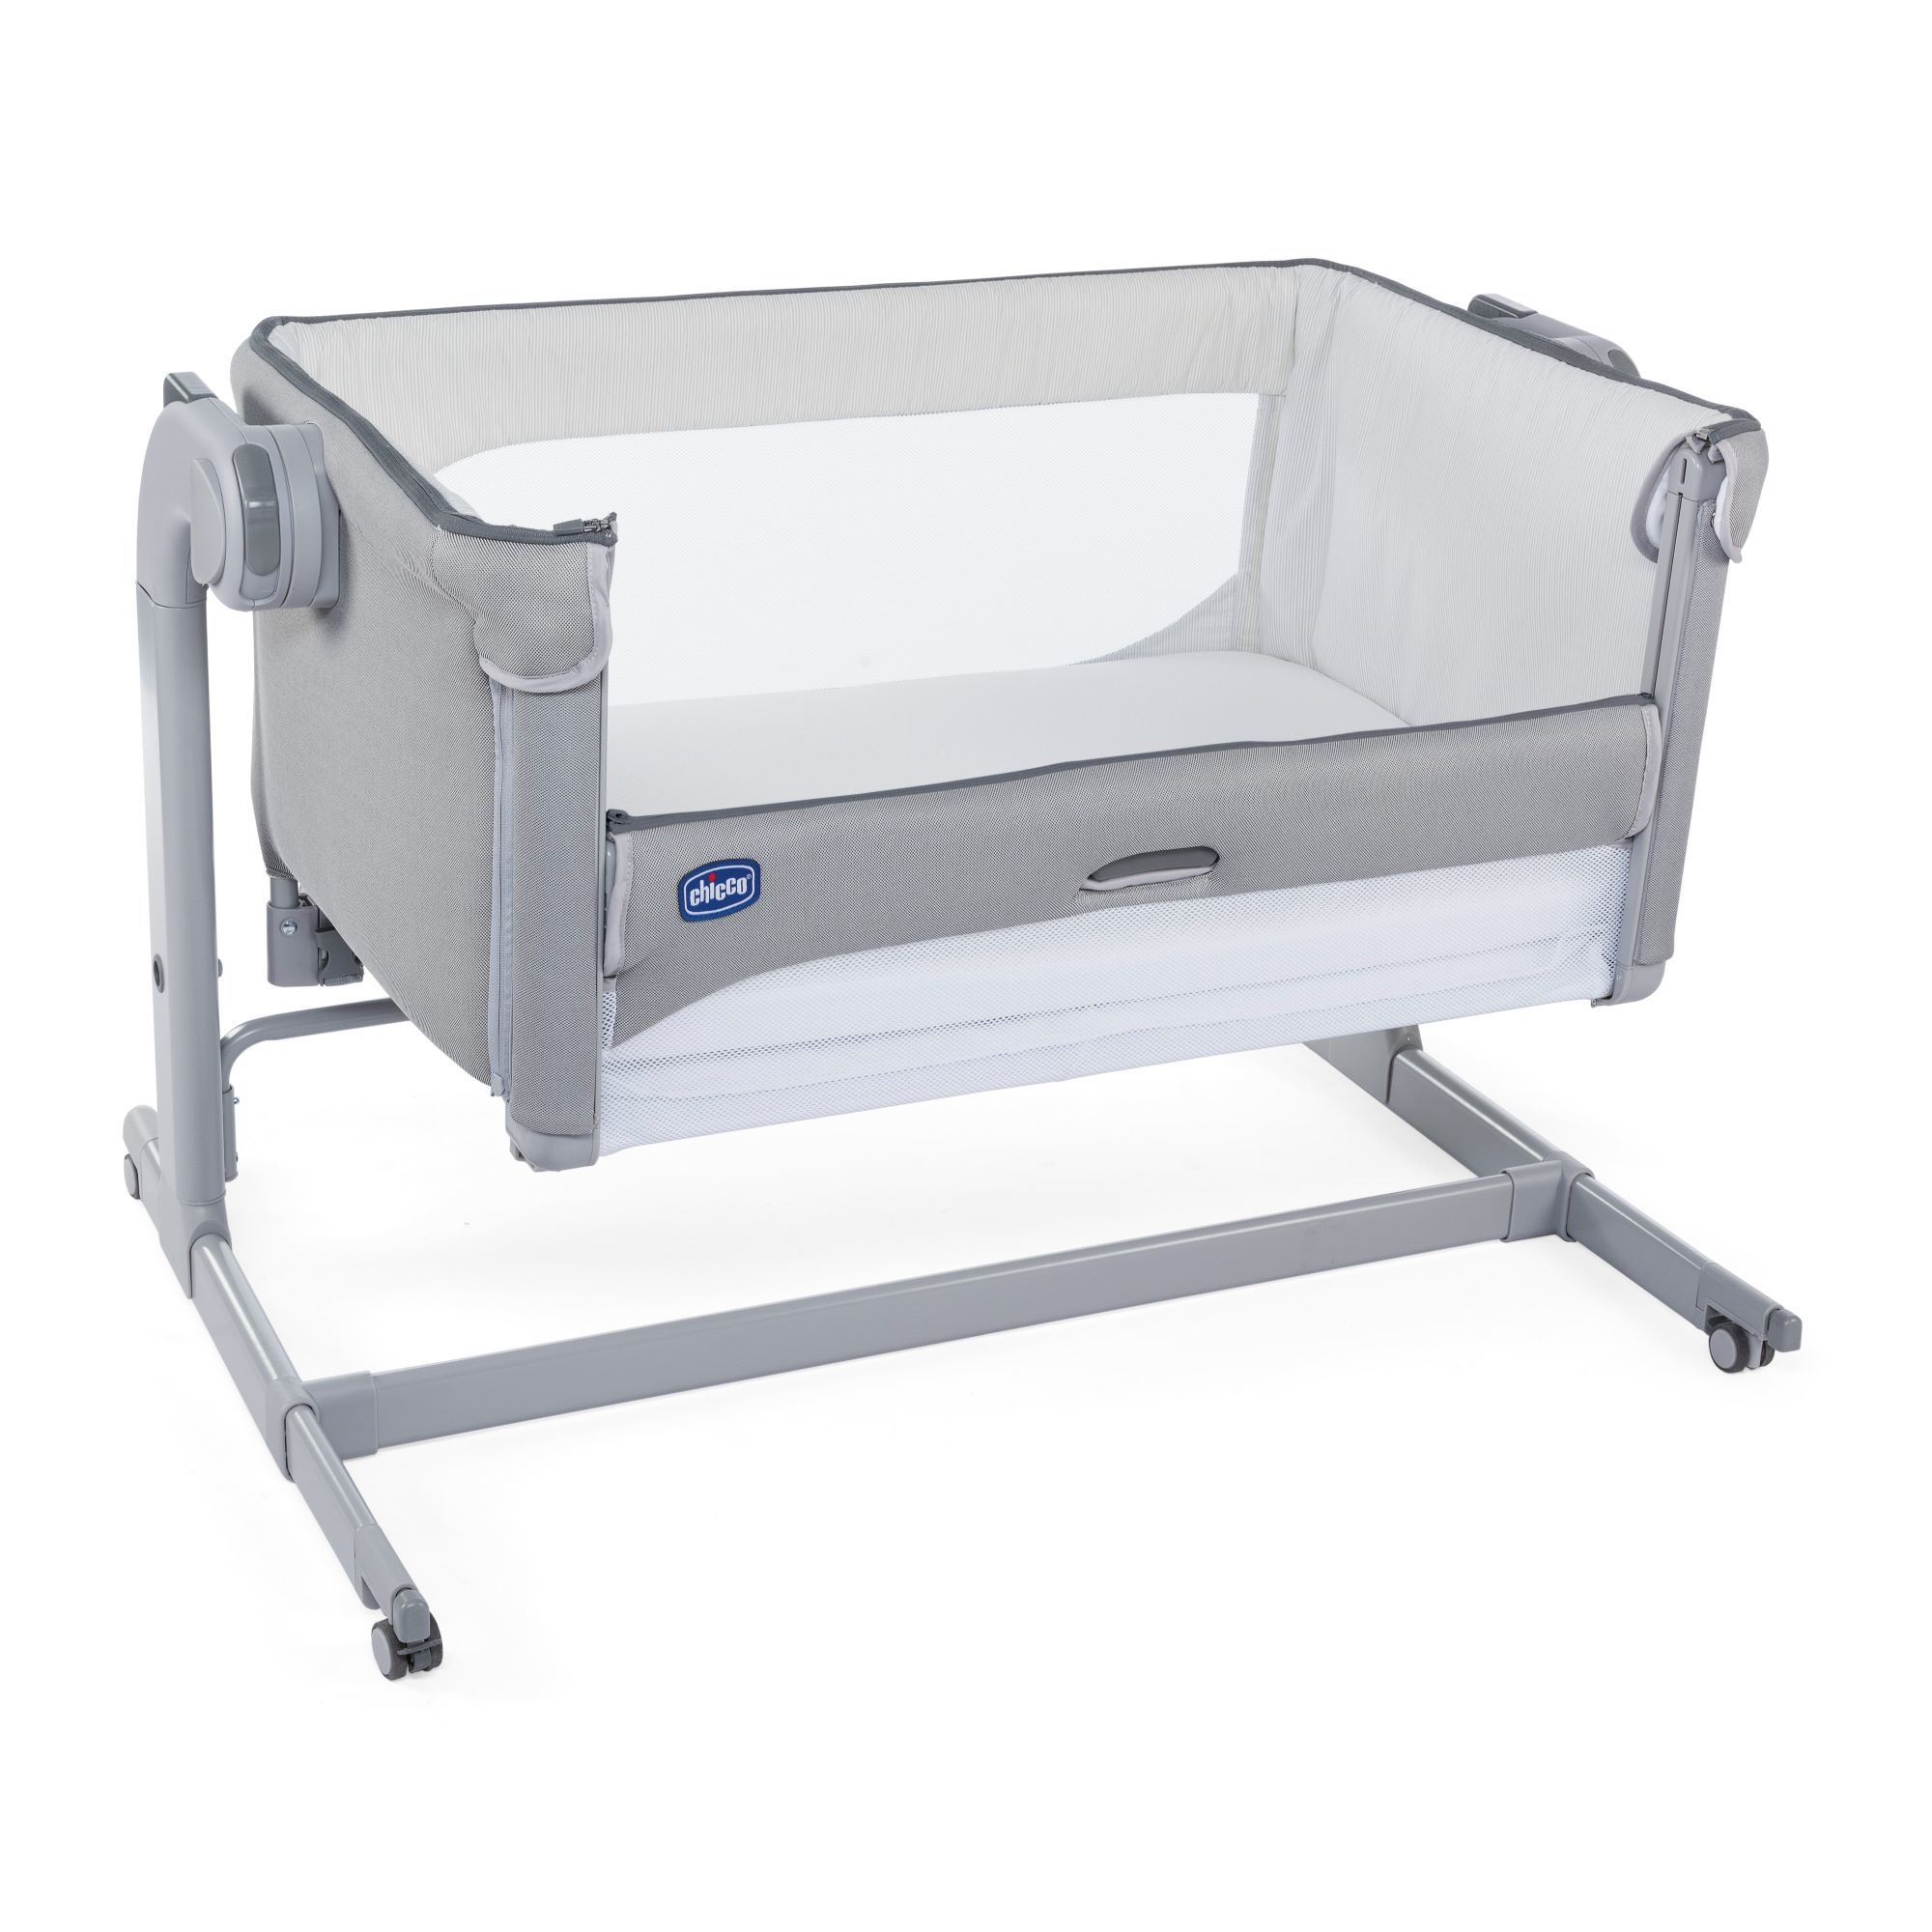 What Can Baby Sleep In Next To Bed Chicco Next2me Magic Side Sleeping Crib Sleeptime And